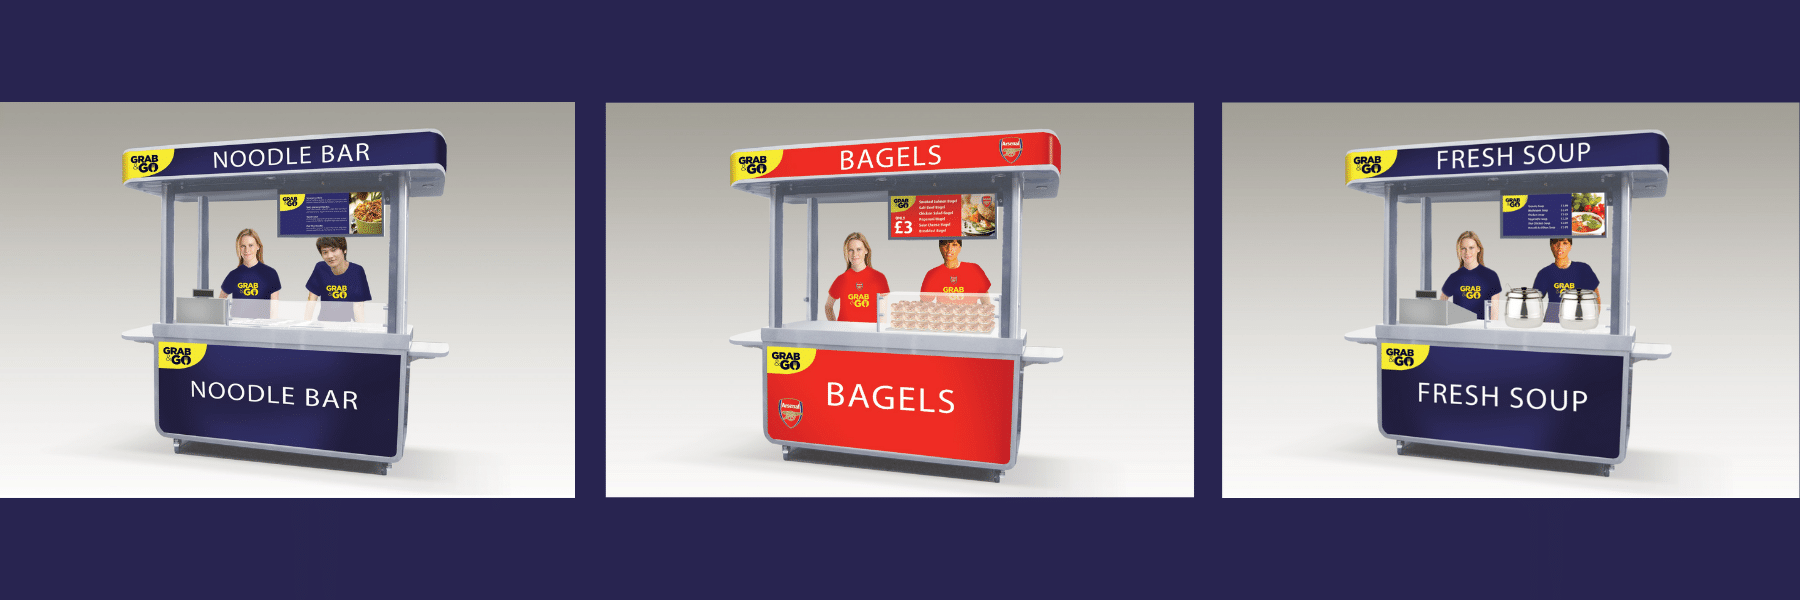 <p>Bespoke Products – Mobile Carts – Food Cart – Custom Design – Concept Design</p> <p></p> <p>Stylish, eloquent & custom-made Mobile Food Cart visual images of custom-built modular design</p> <p></p> <p>Designed to meet the customer needs & objectives to include catering equipment as required for serving hot drinks, hot or cold food etc or whatever the customer requires to make their mobile food bar unique & exclusive to their brand</p> <p></p> <p>One example of a design. We can design and manufacture to meet customer's specific objectives</p>